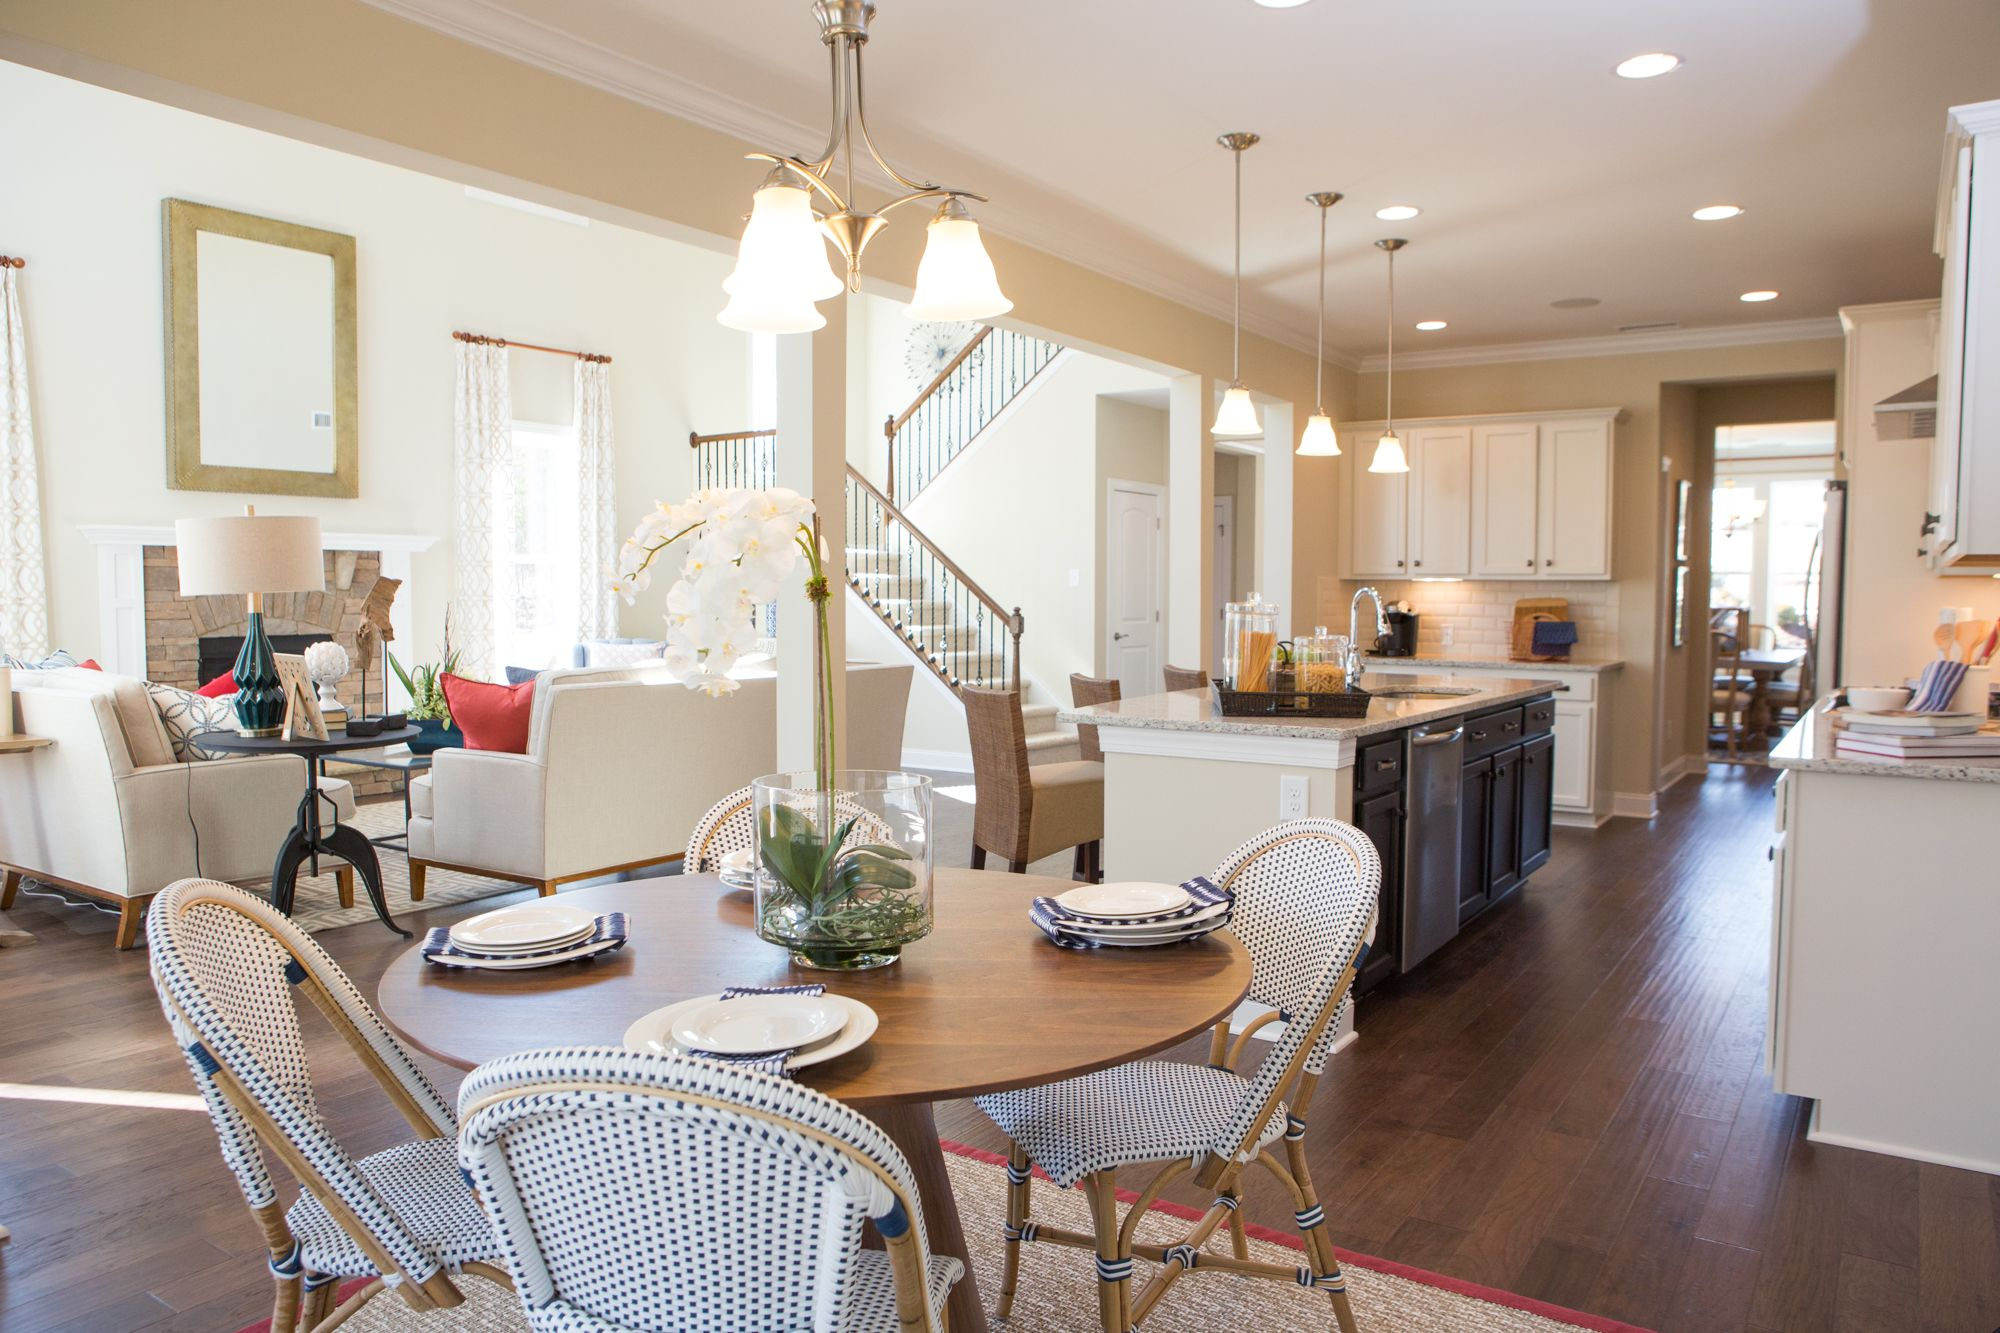 Find our elegantly designed model homes at the Hollybrook